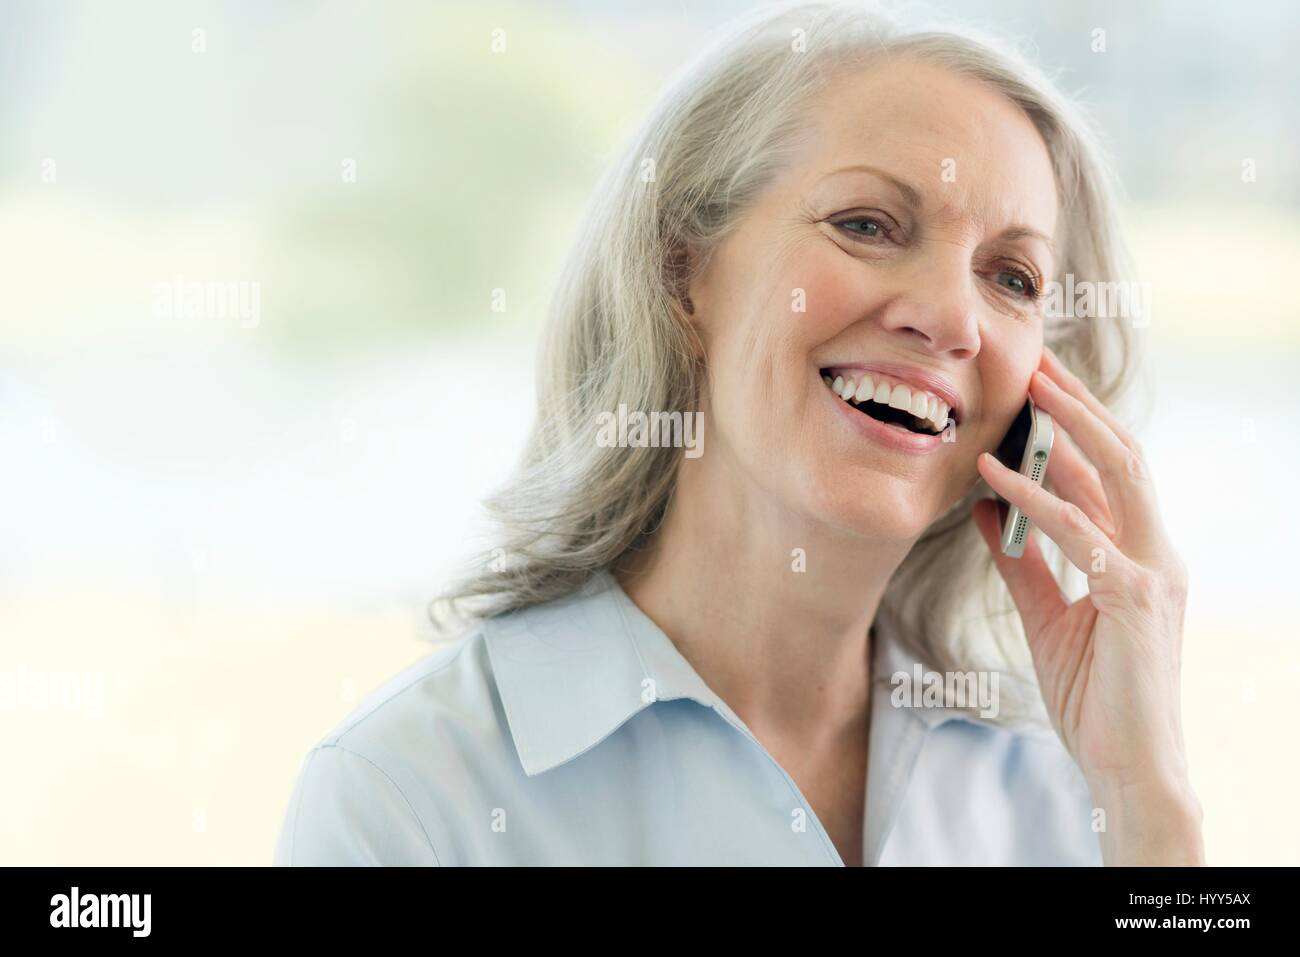 Senior woman on cell phone. - Stock Image